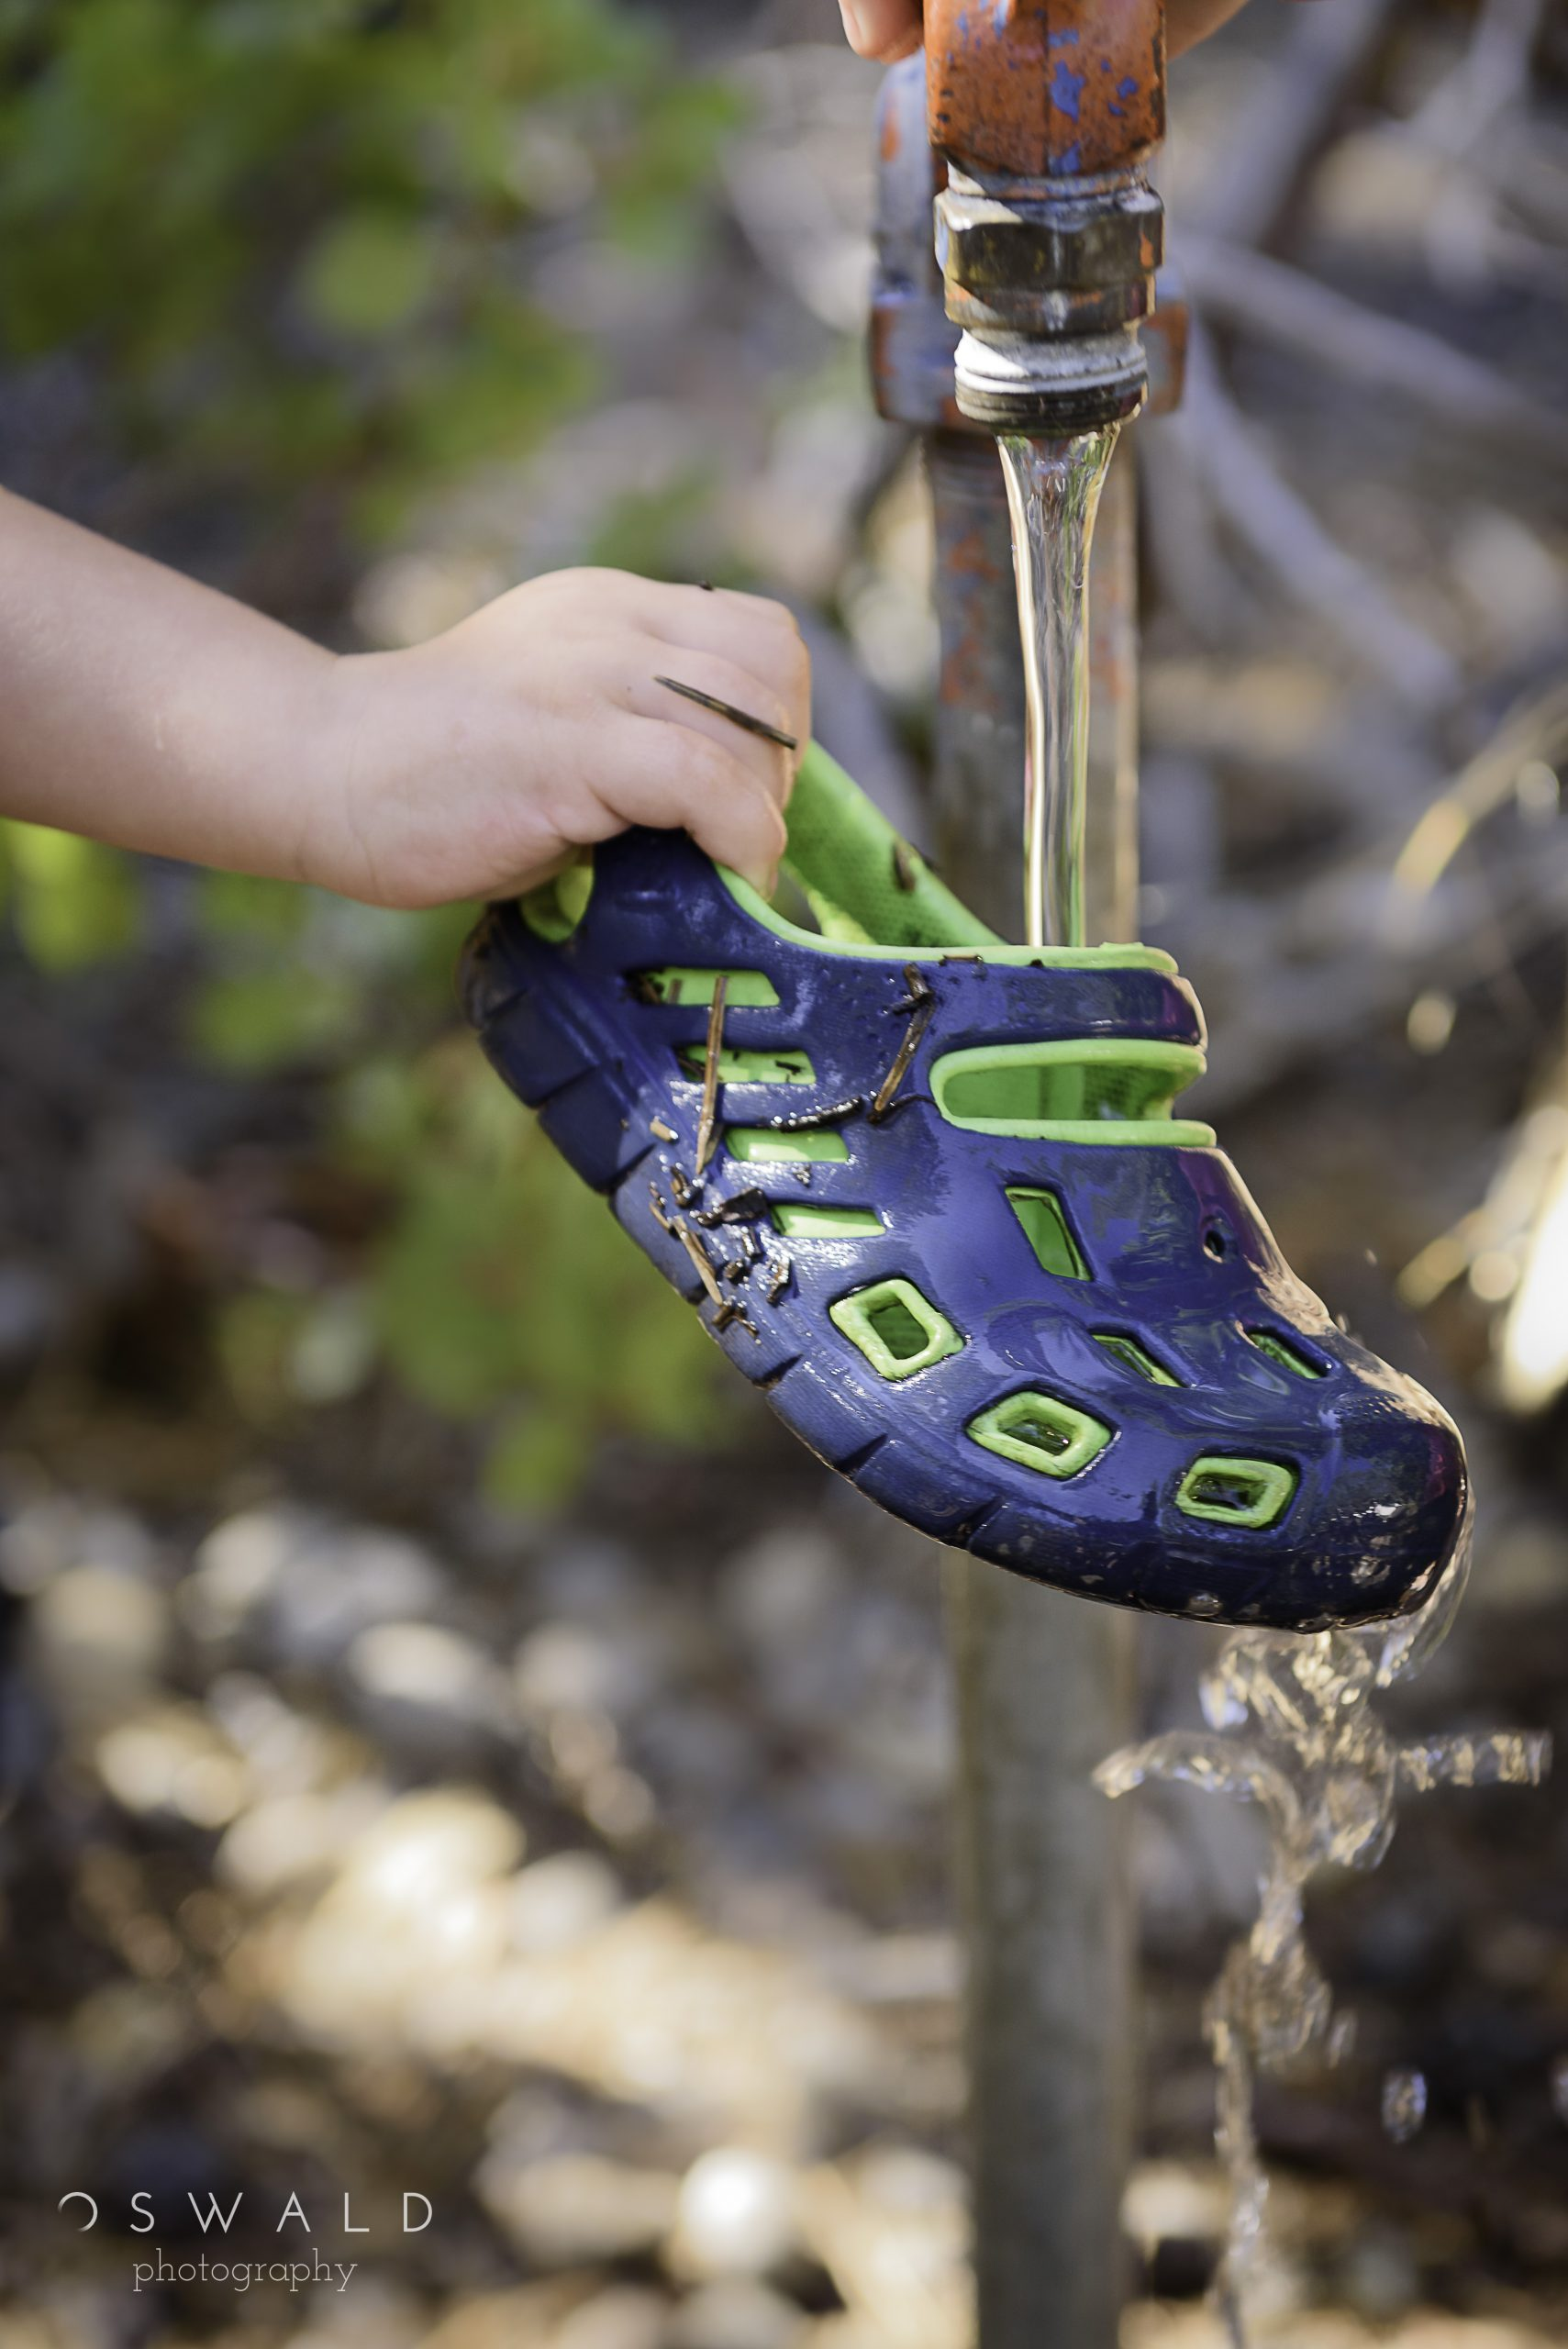 Photograph of water flowing over a child's shoe.